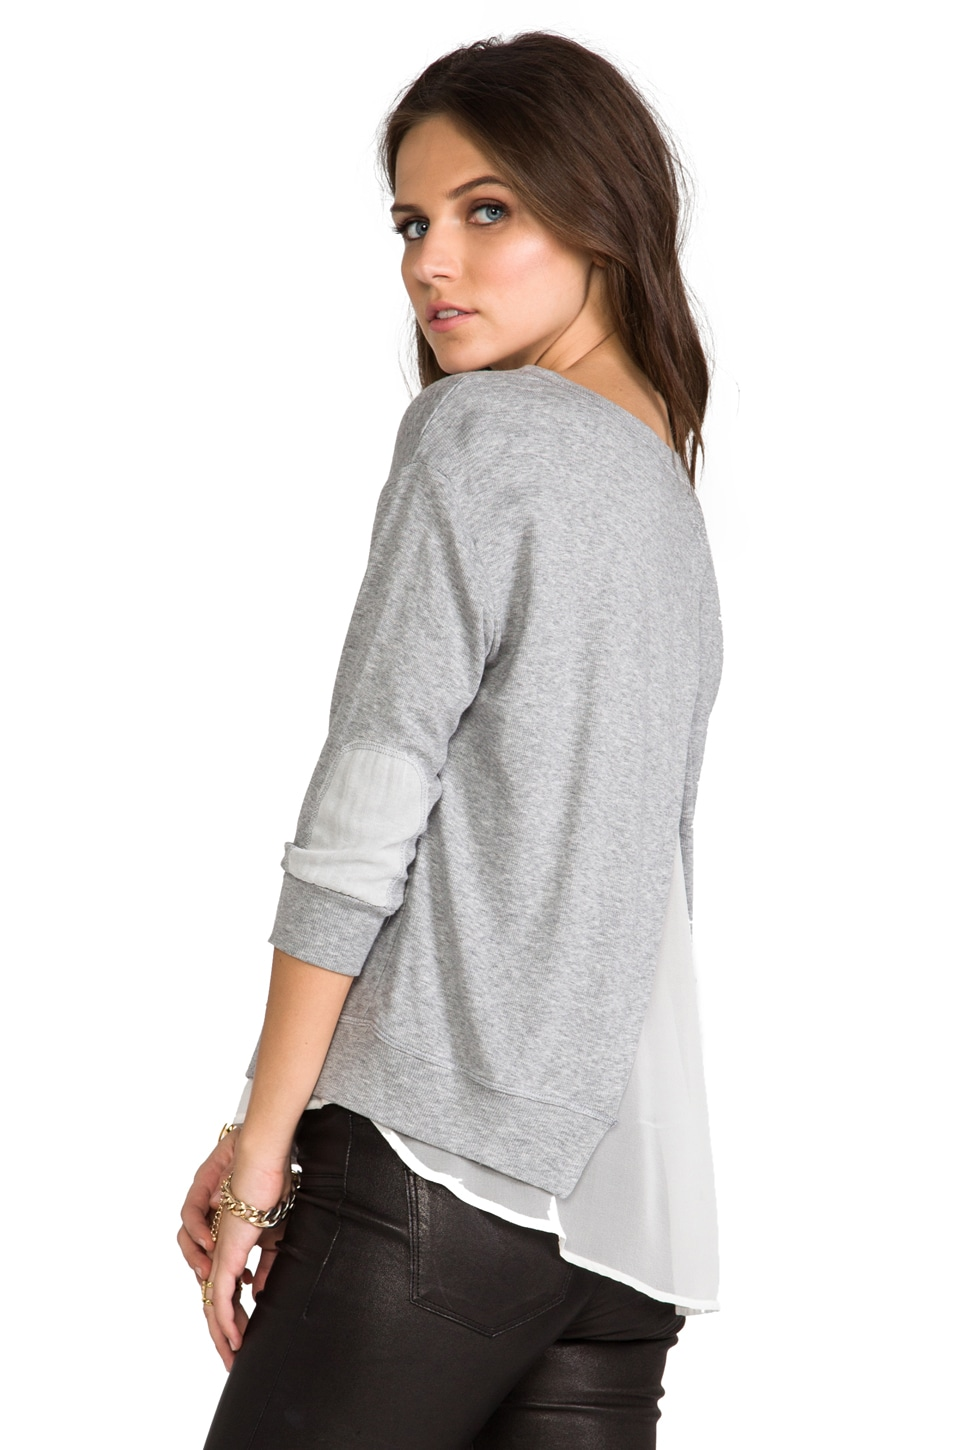 Heather Chiffon Grandpa Top in Light Heather Grey